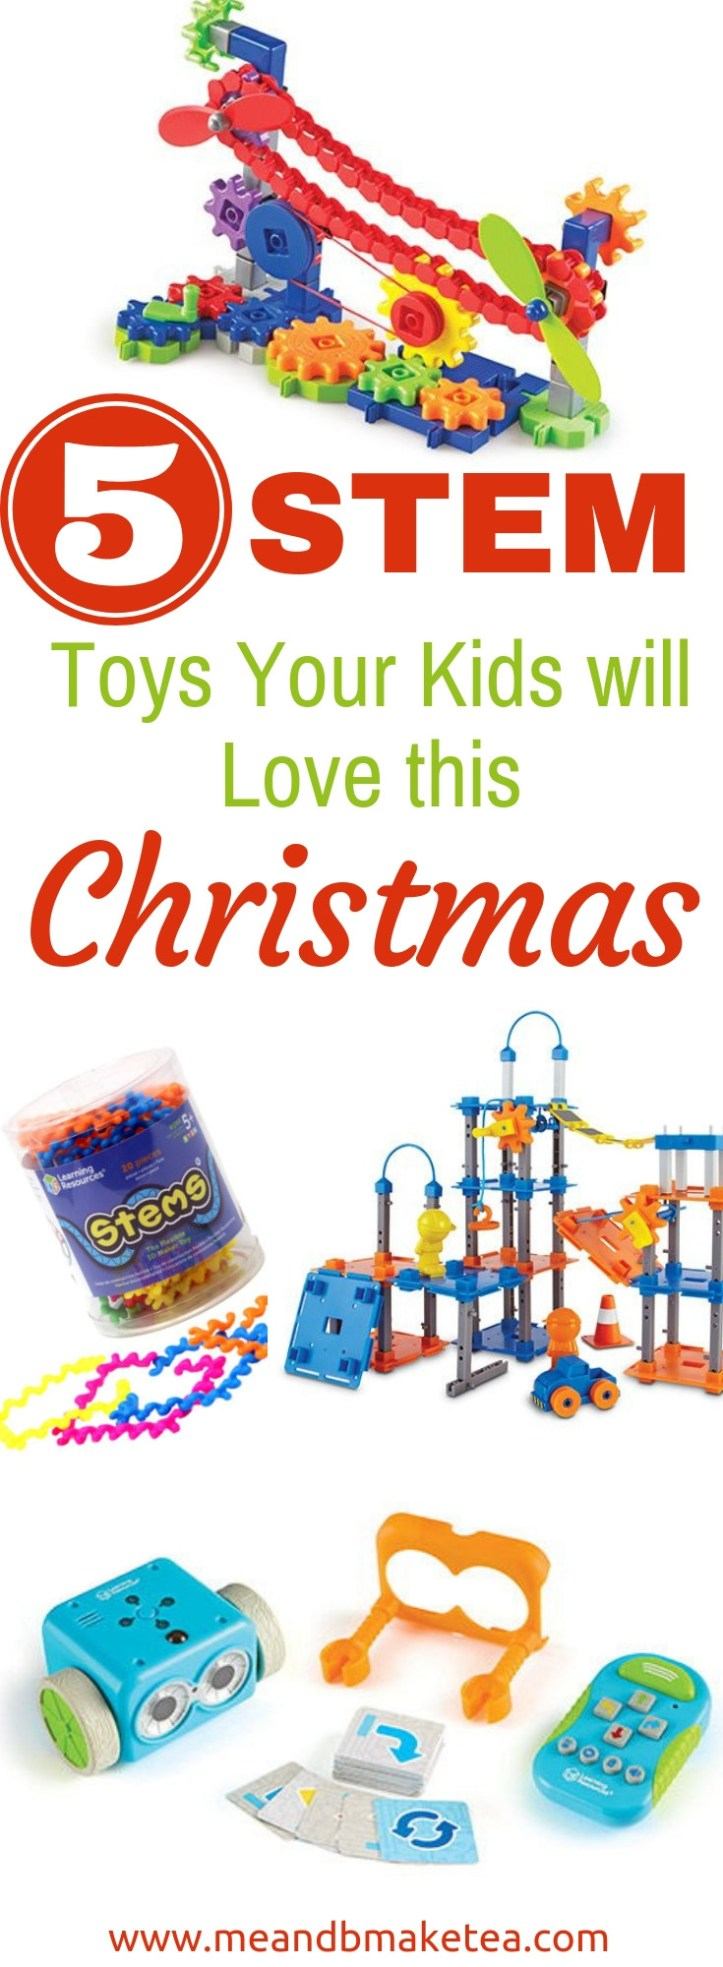 5 STEM Toys your Kids Will love This Christmas!